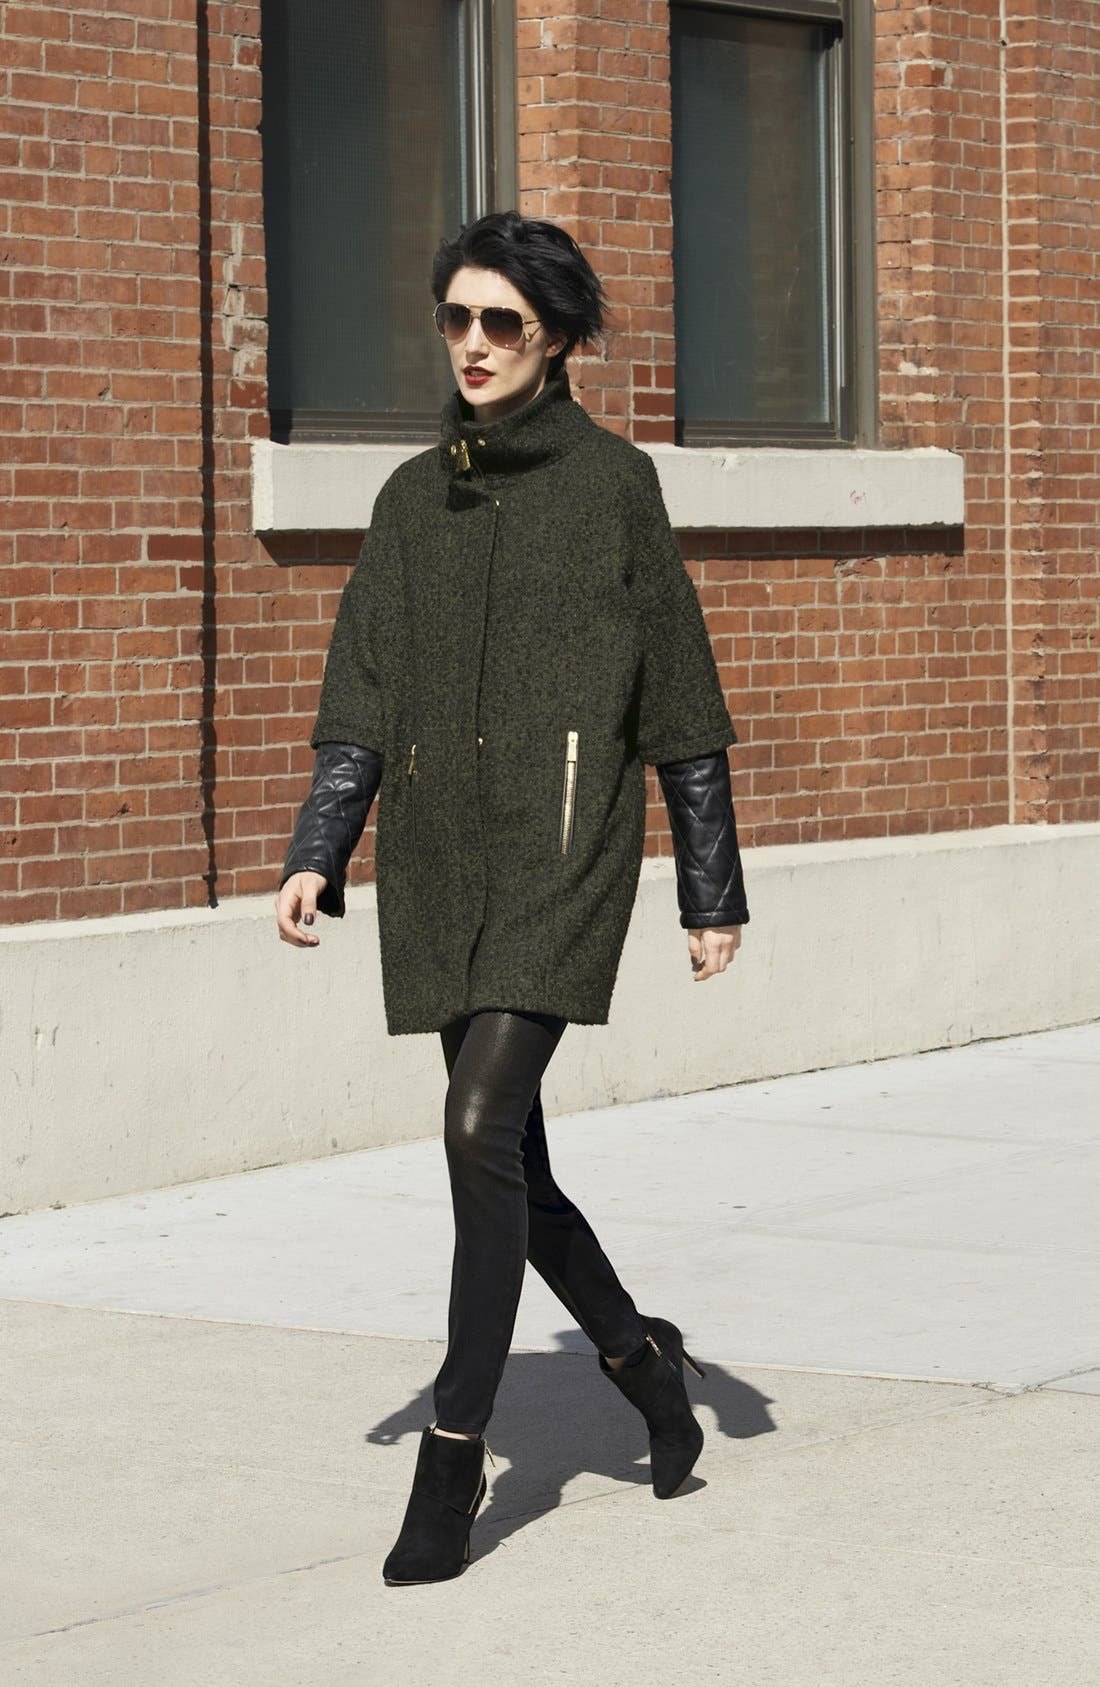 Main Image - Vince Camuto Tweed & Faux Leather Coat with J Brand Skinny Jeans